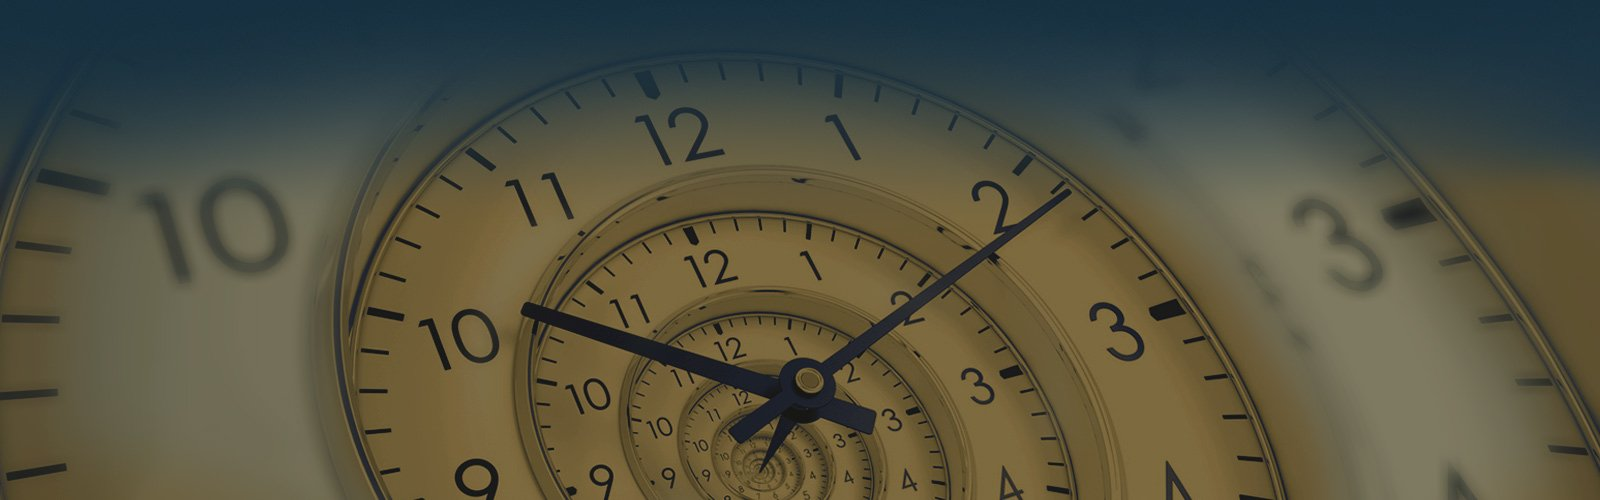 How long should the process take? by Occupa Commercial Property Consultants